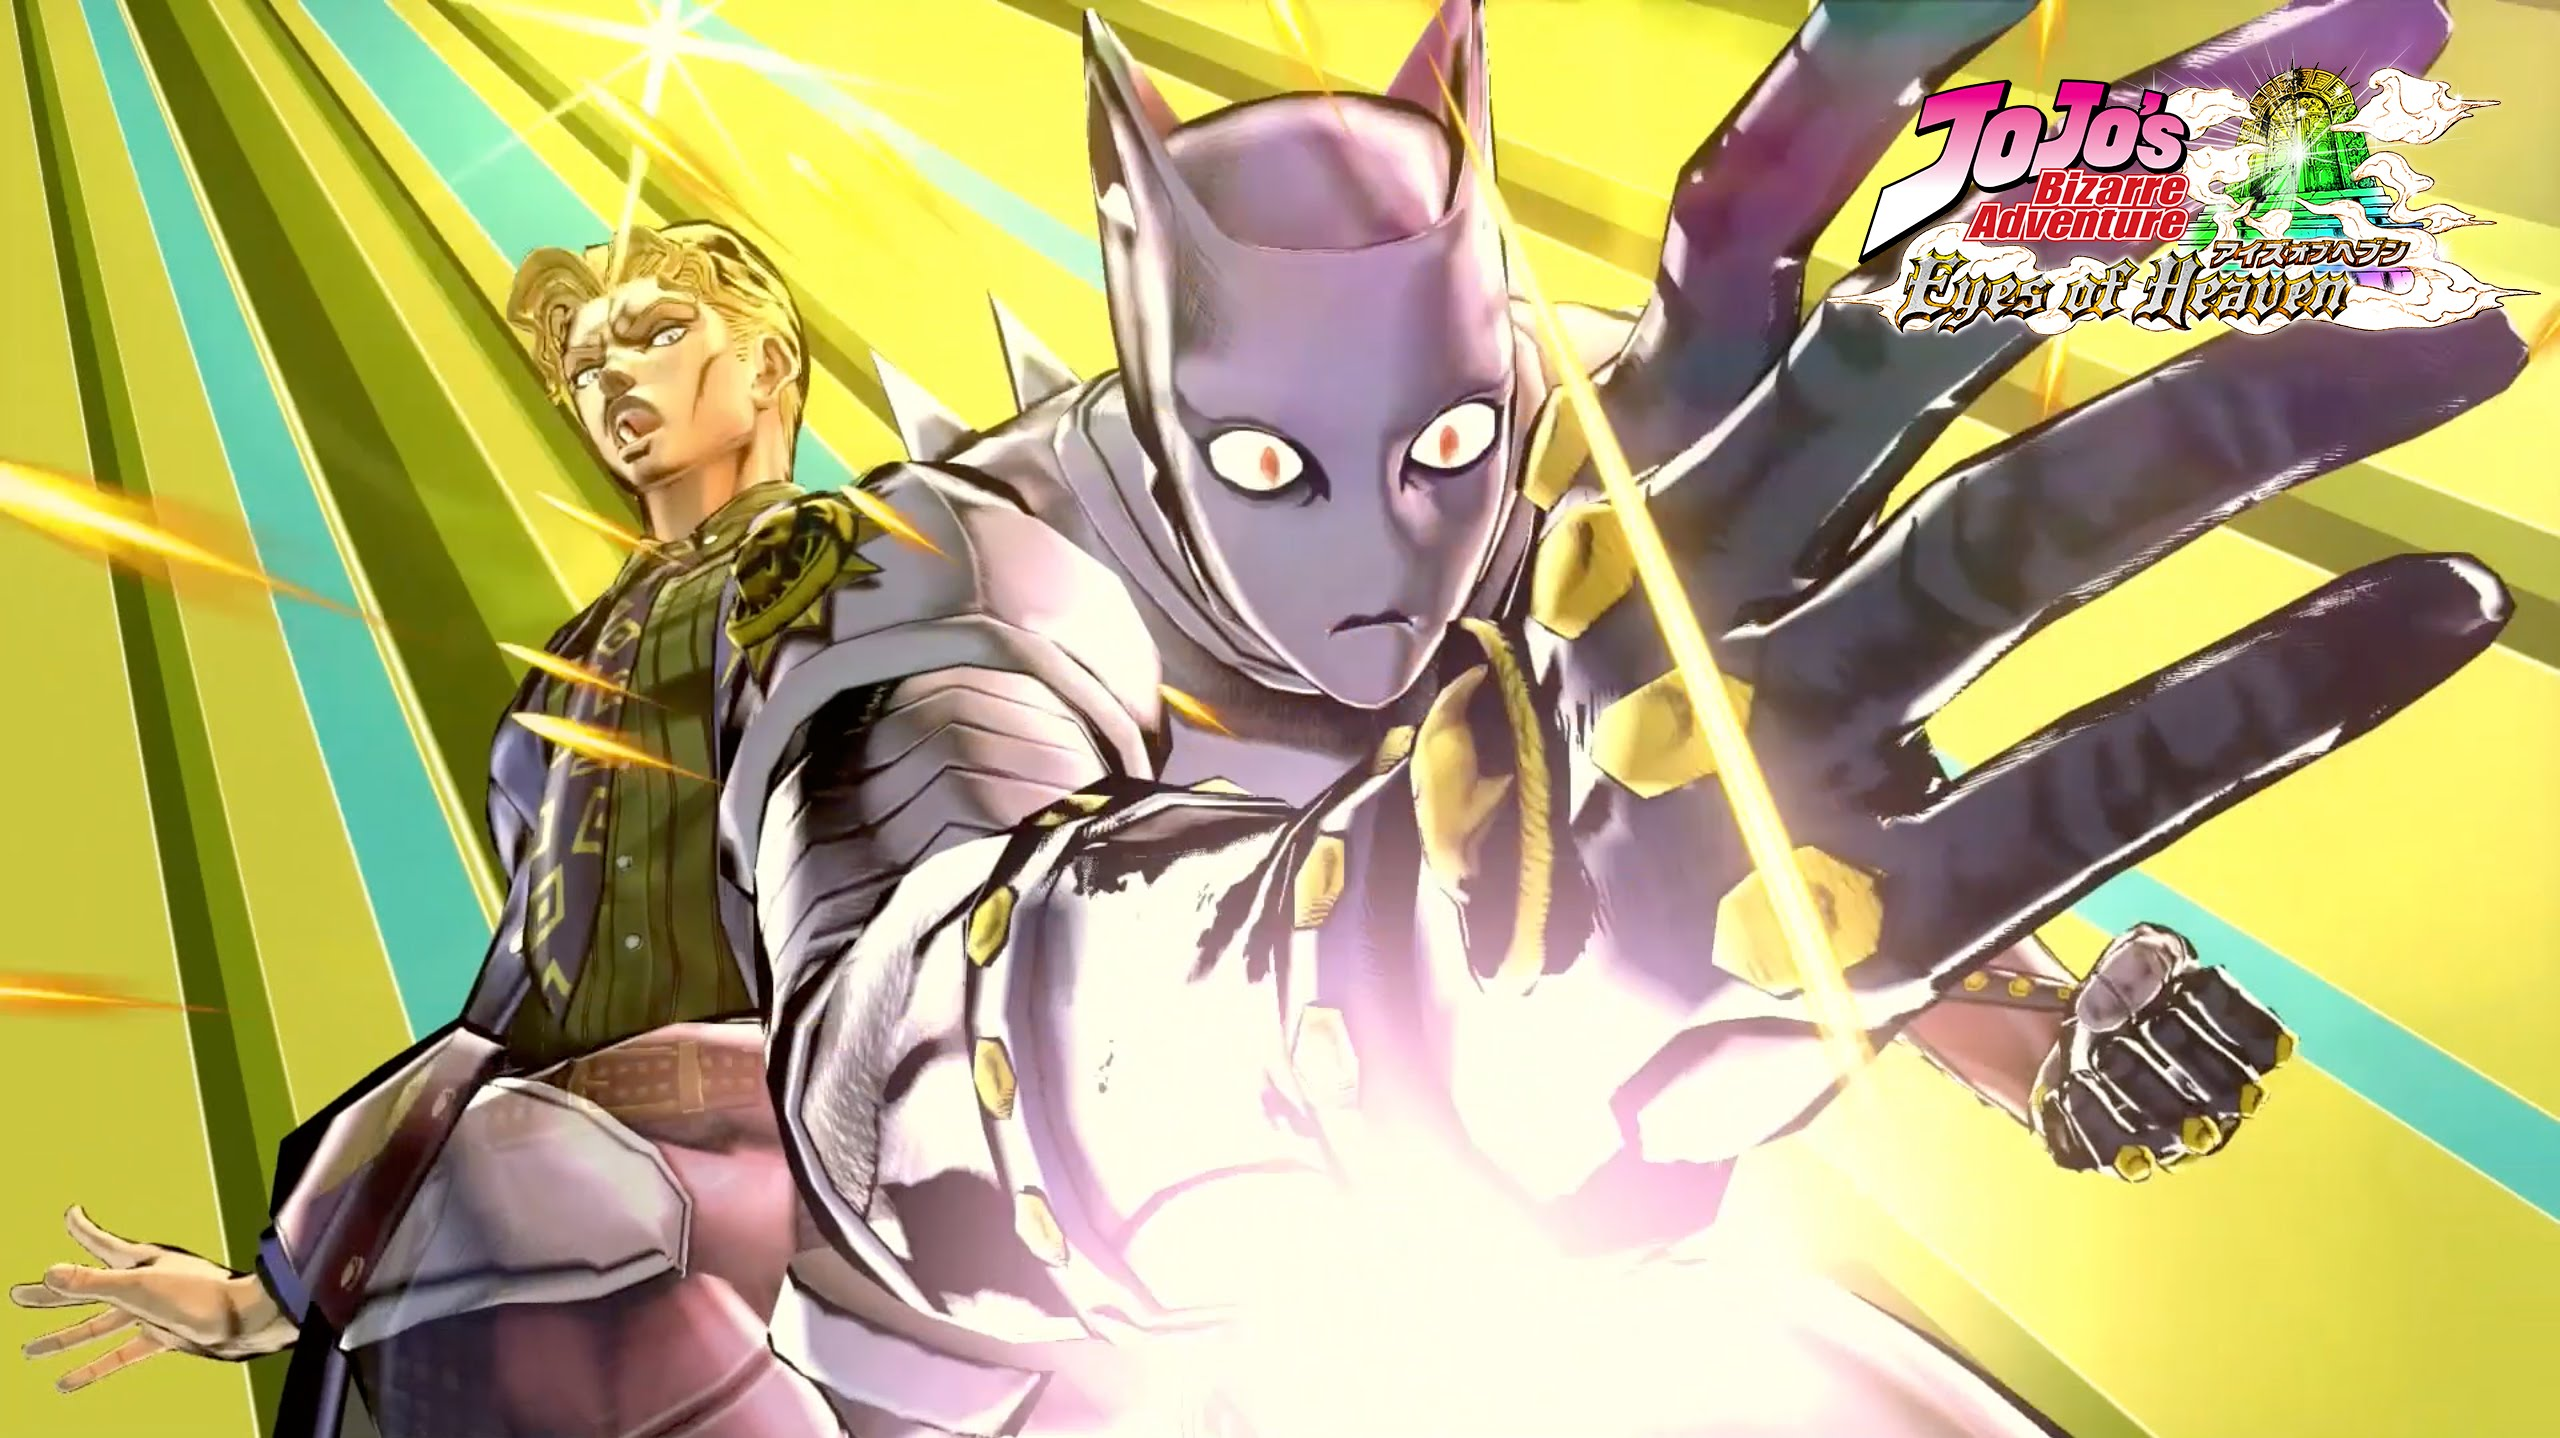 JoJo's Bizarre Adventure: Eyes of Heaven - Chapter 3 Trailer